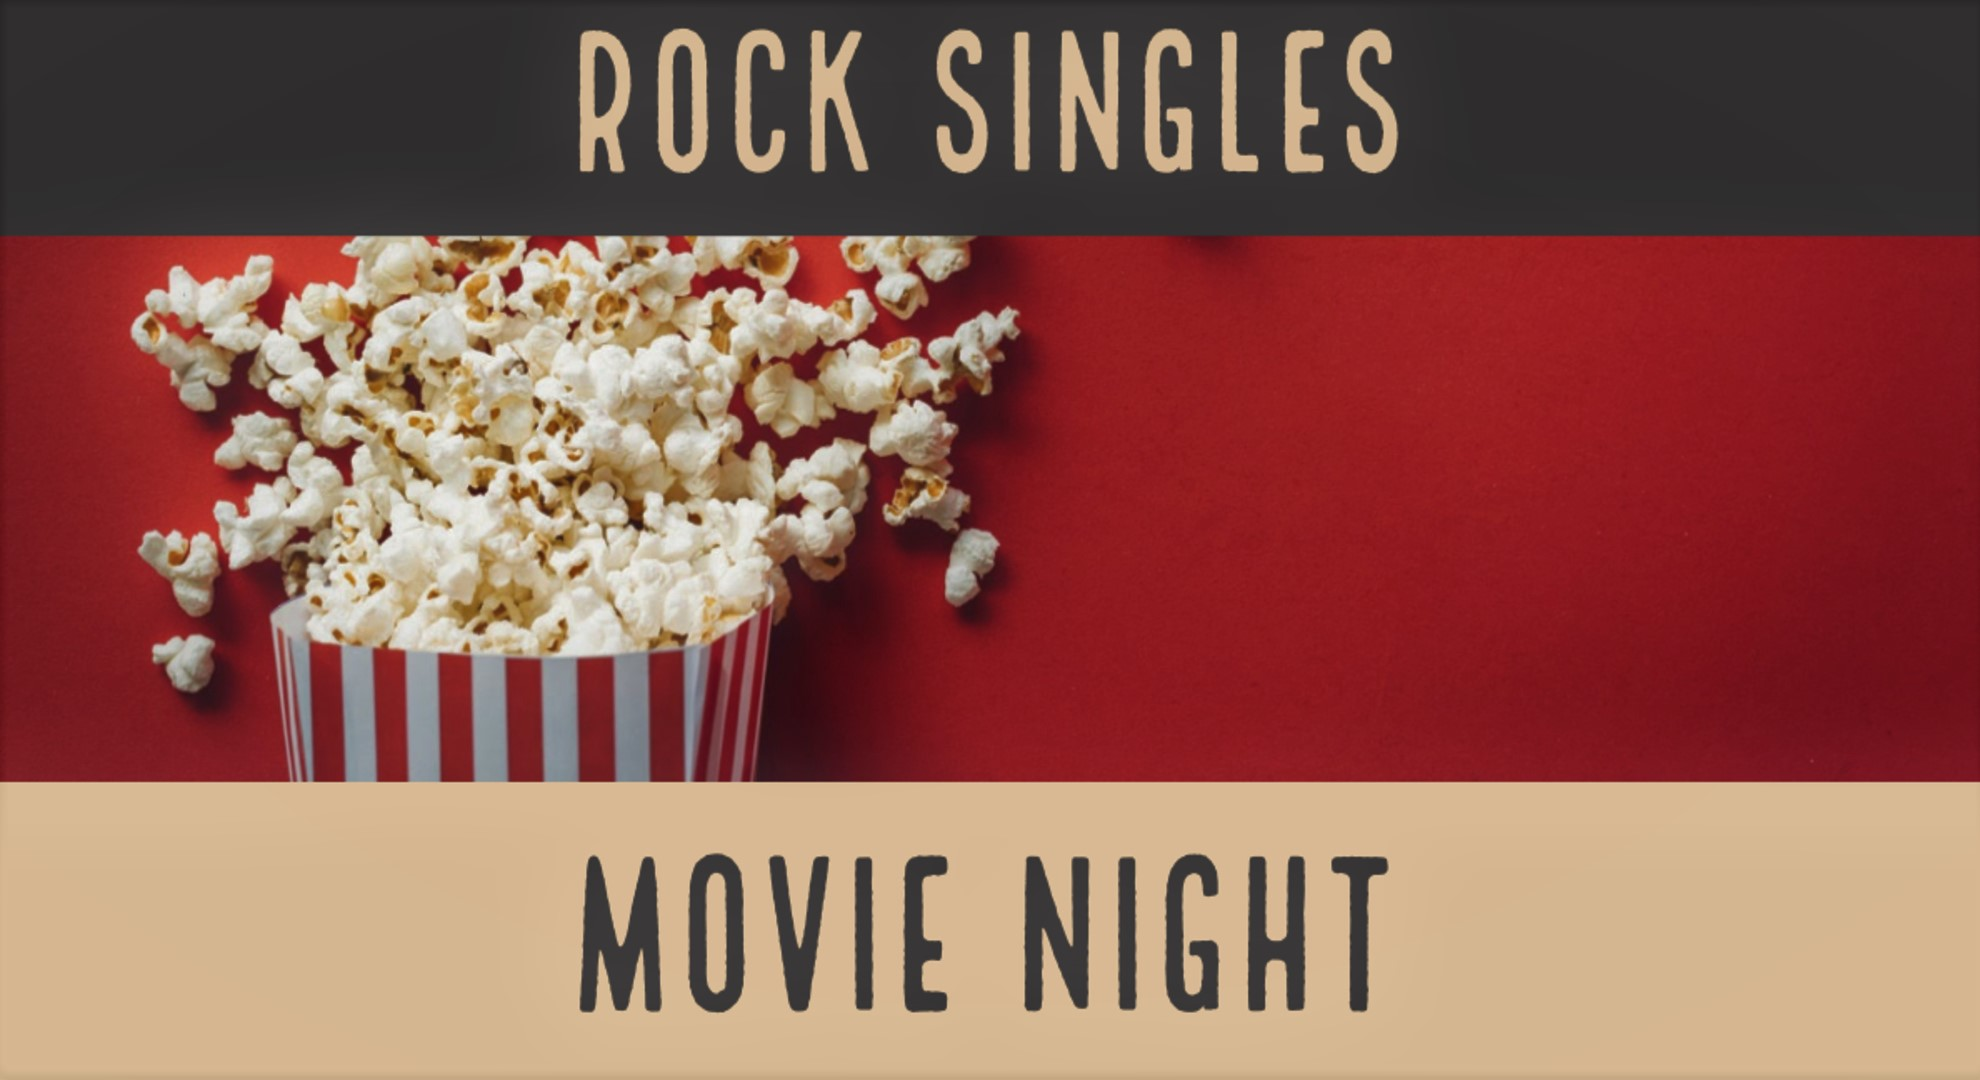 Rock Singles Movie Night